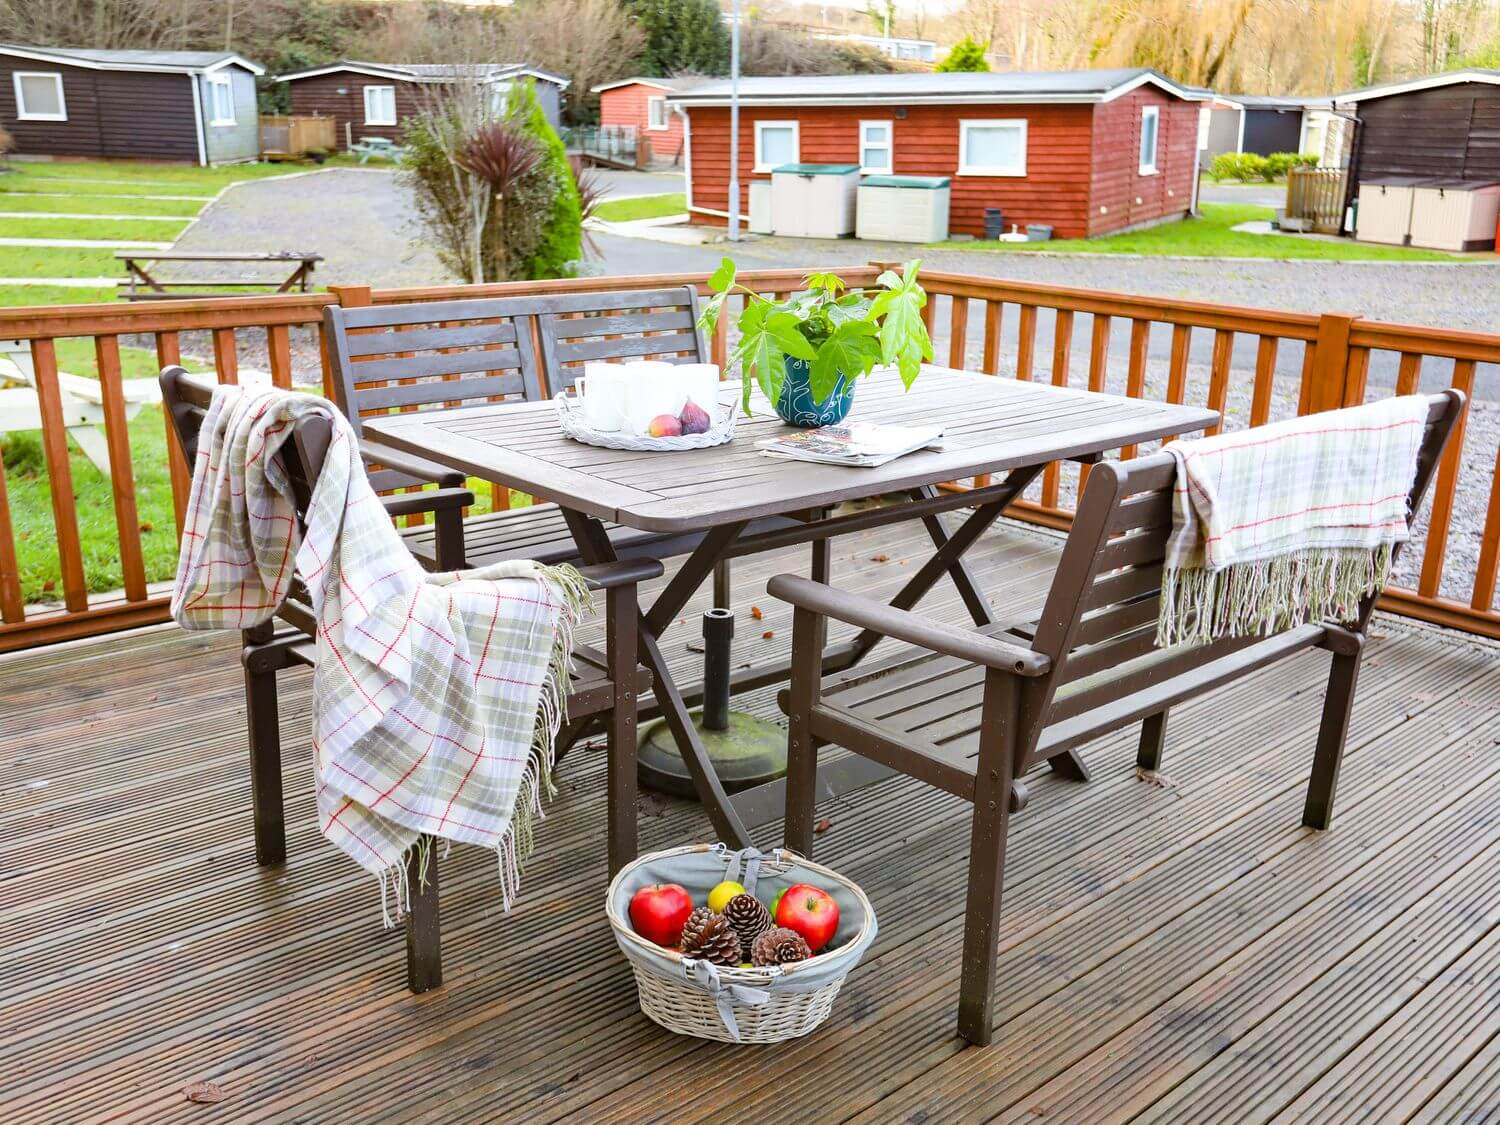 Holiday Cottages in North Wales | MenaI Holiday Cottages